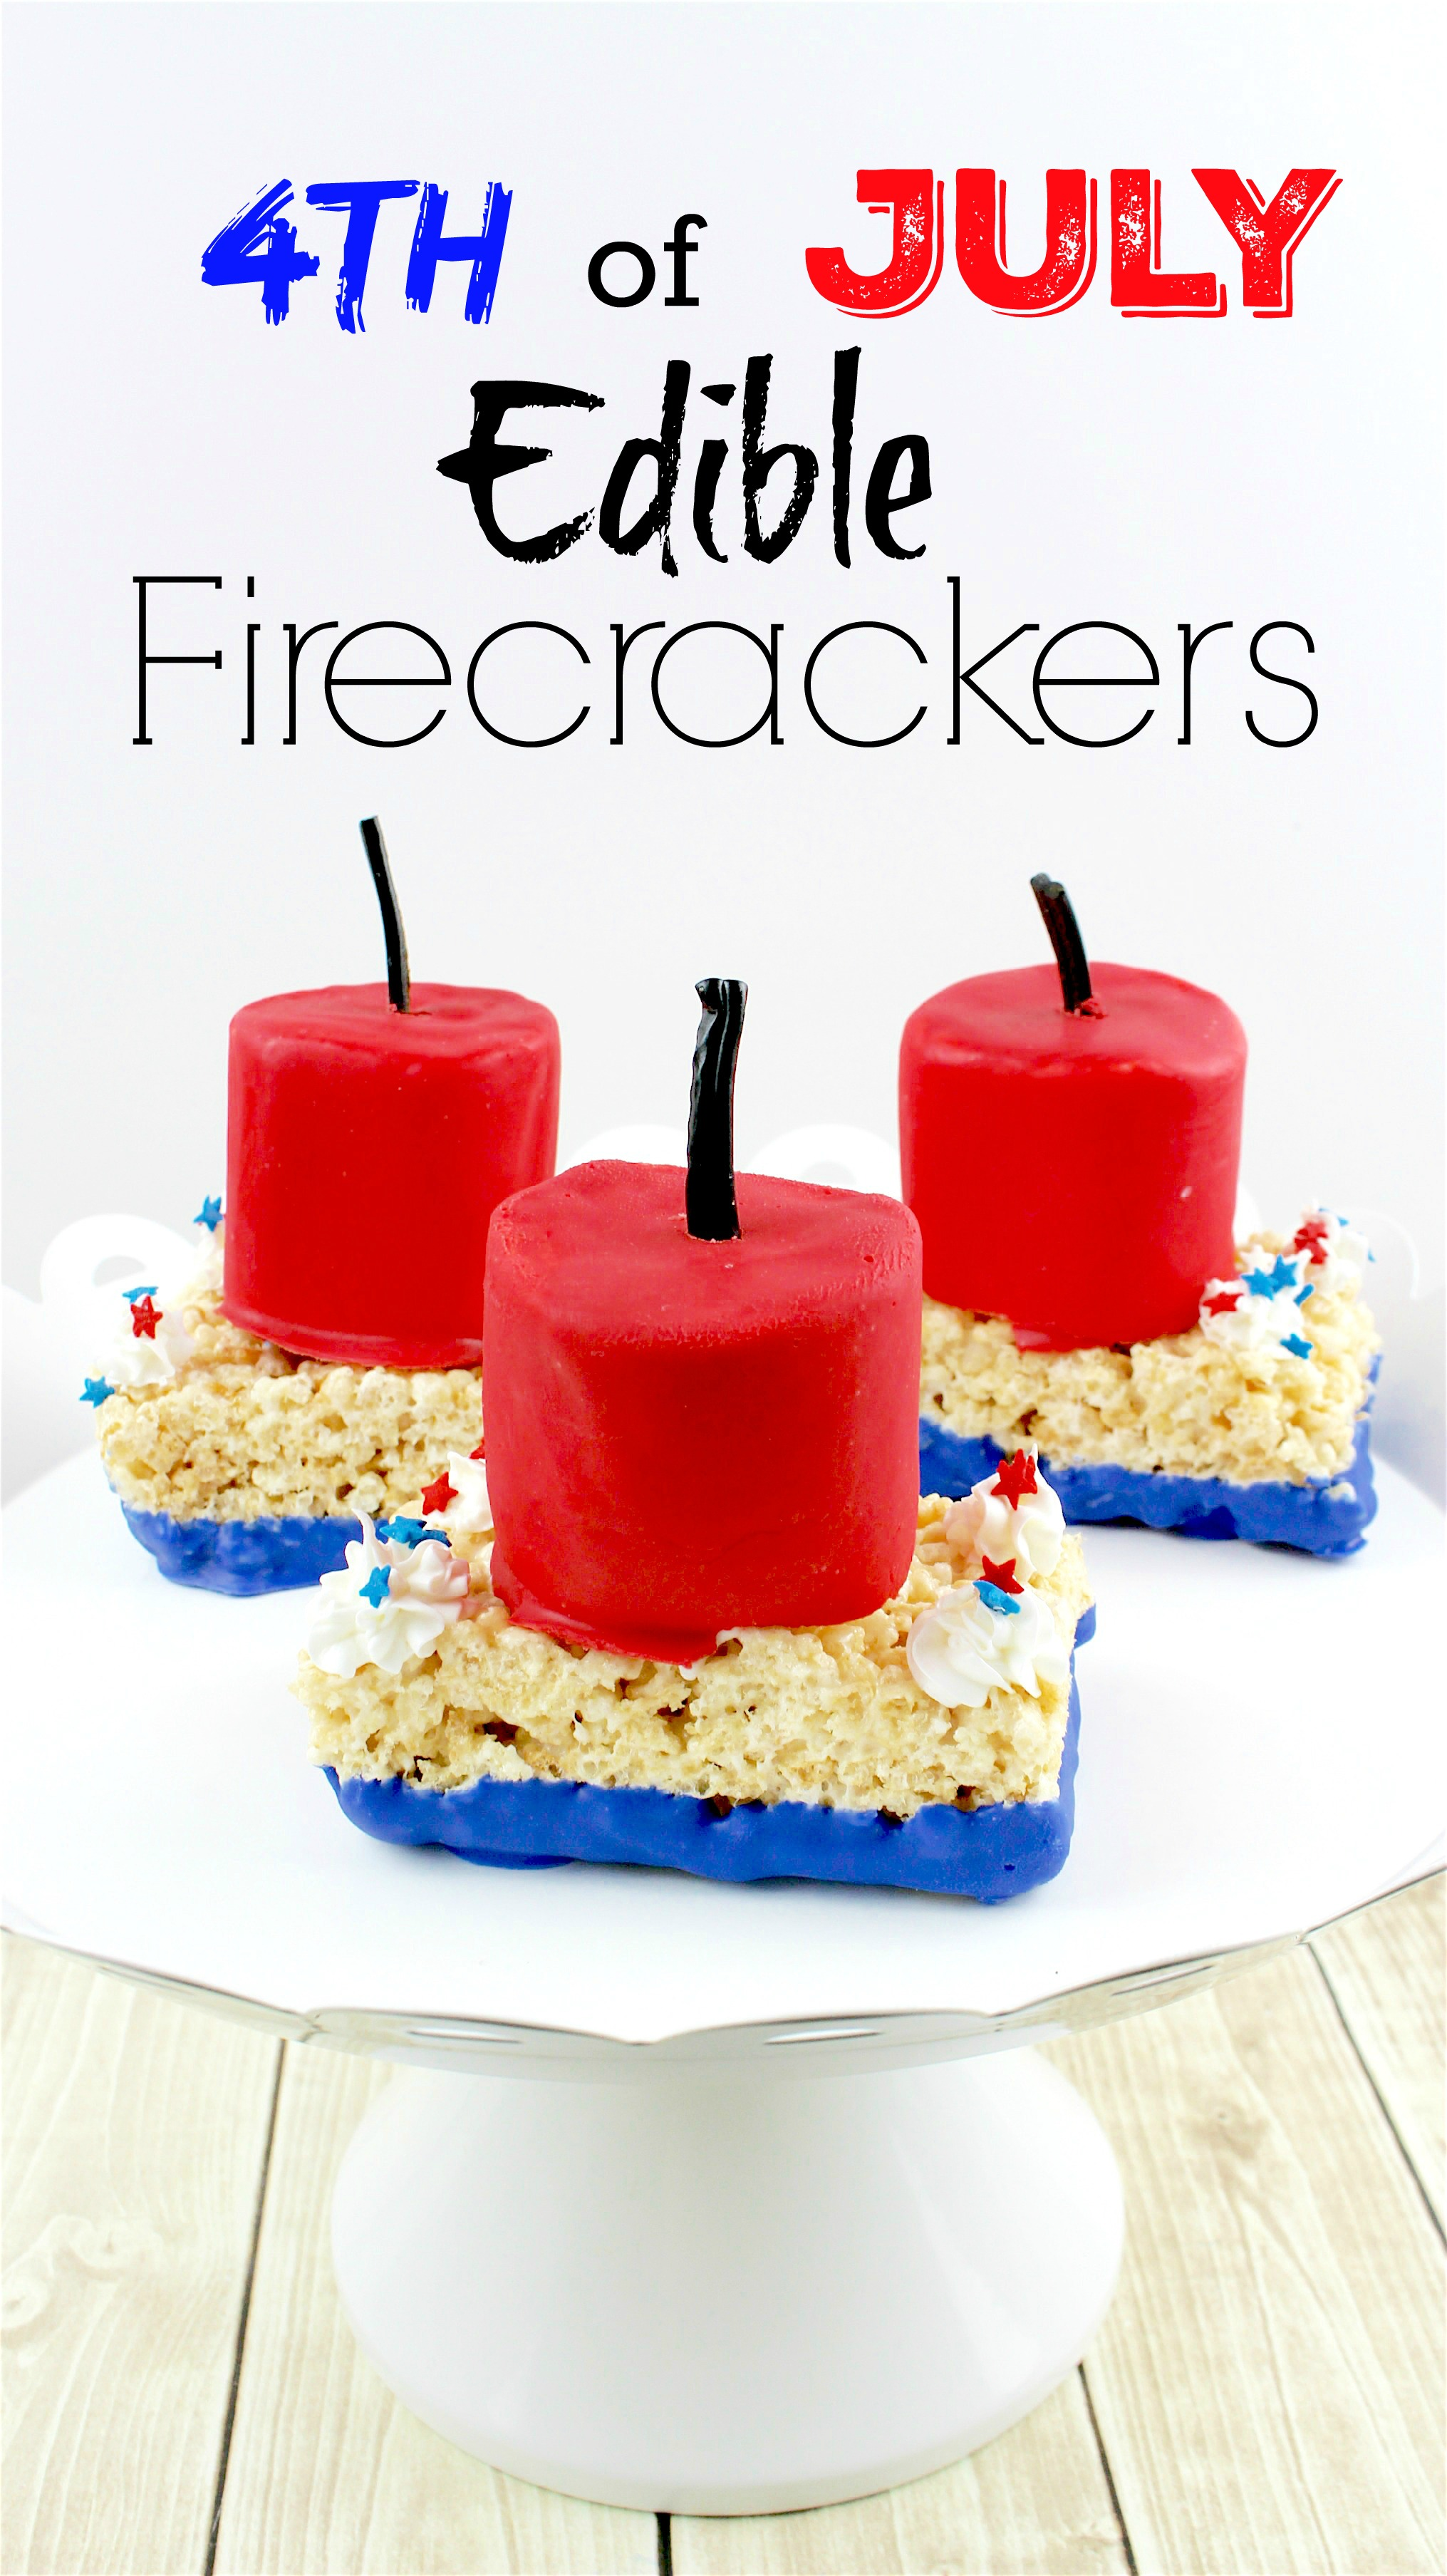 4th of July Edible Firecrackers Recipe Treat